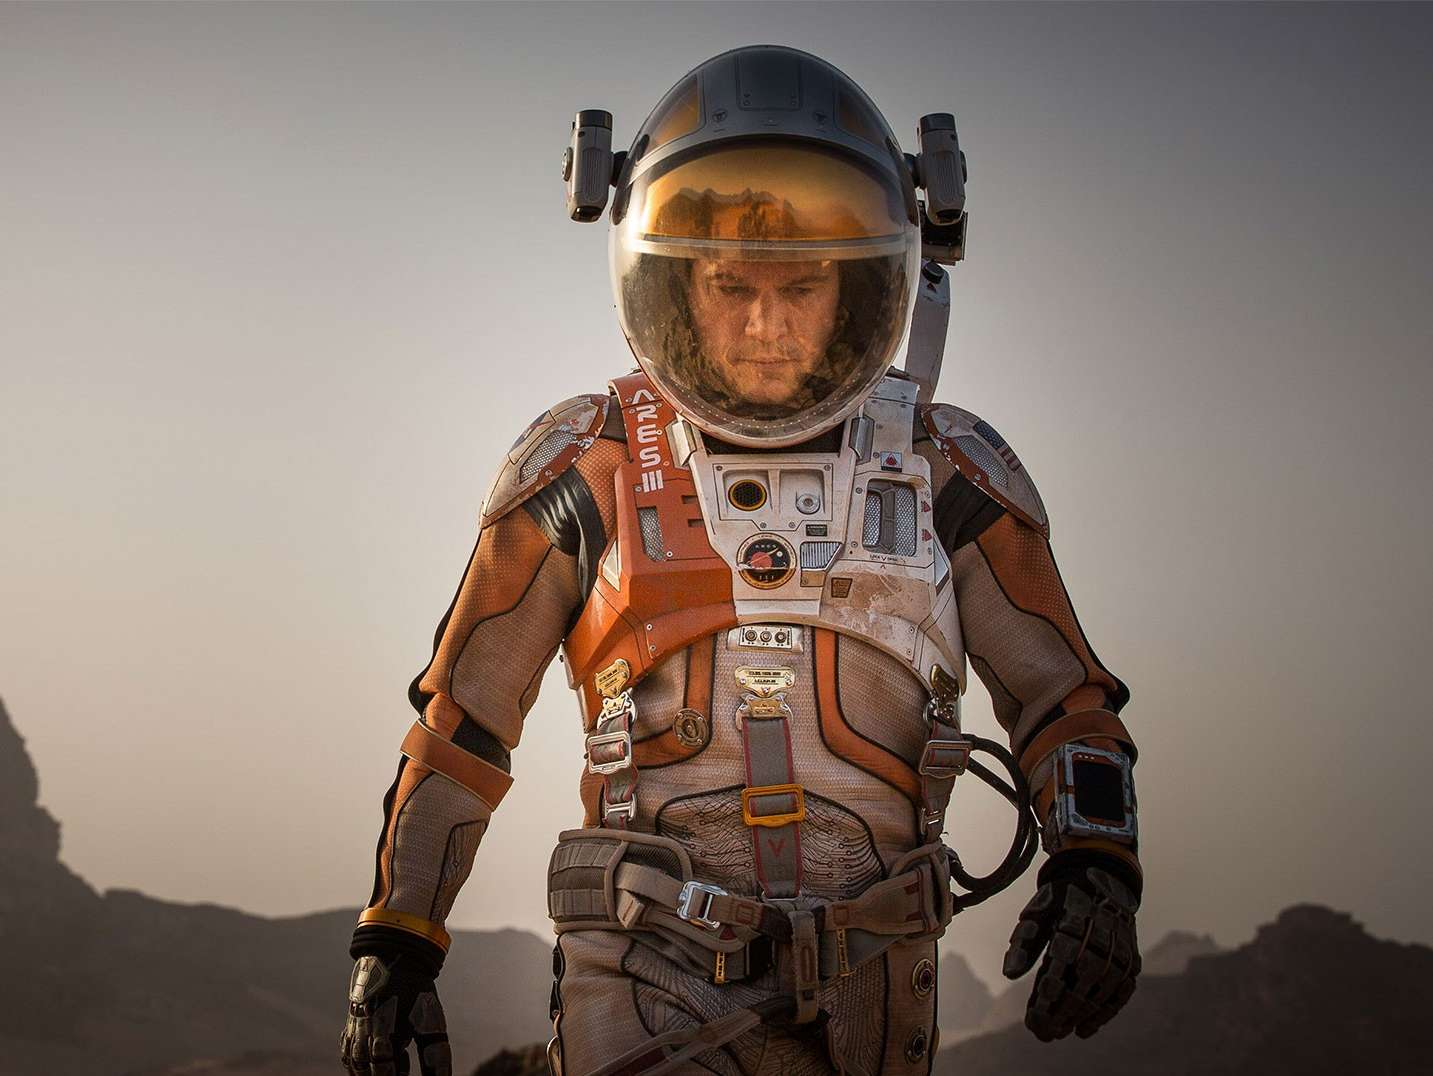 Reasons why 'The Martian' is set to be an epic movie - The 3-D is worth it